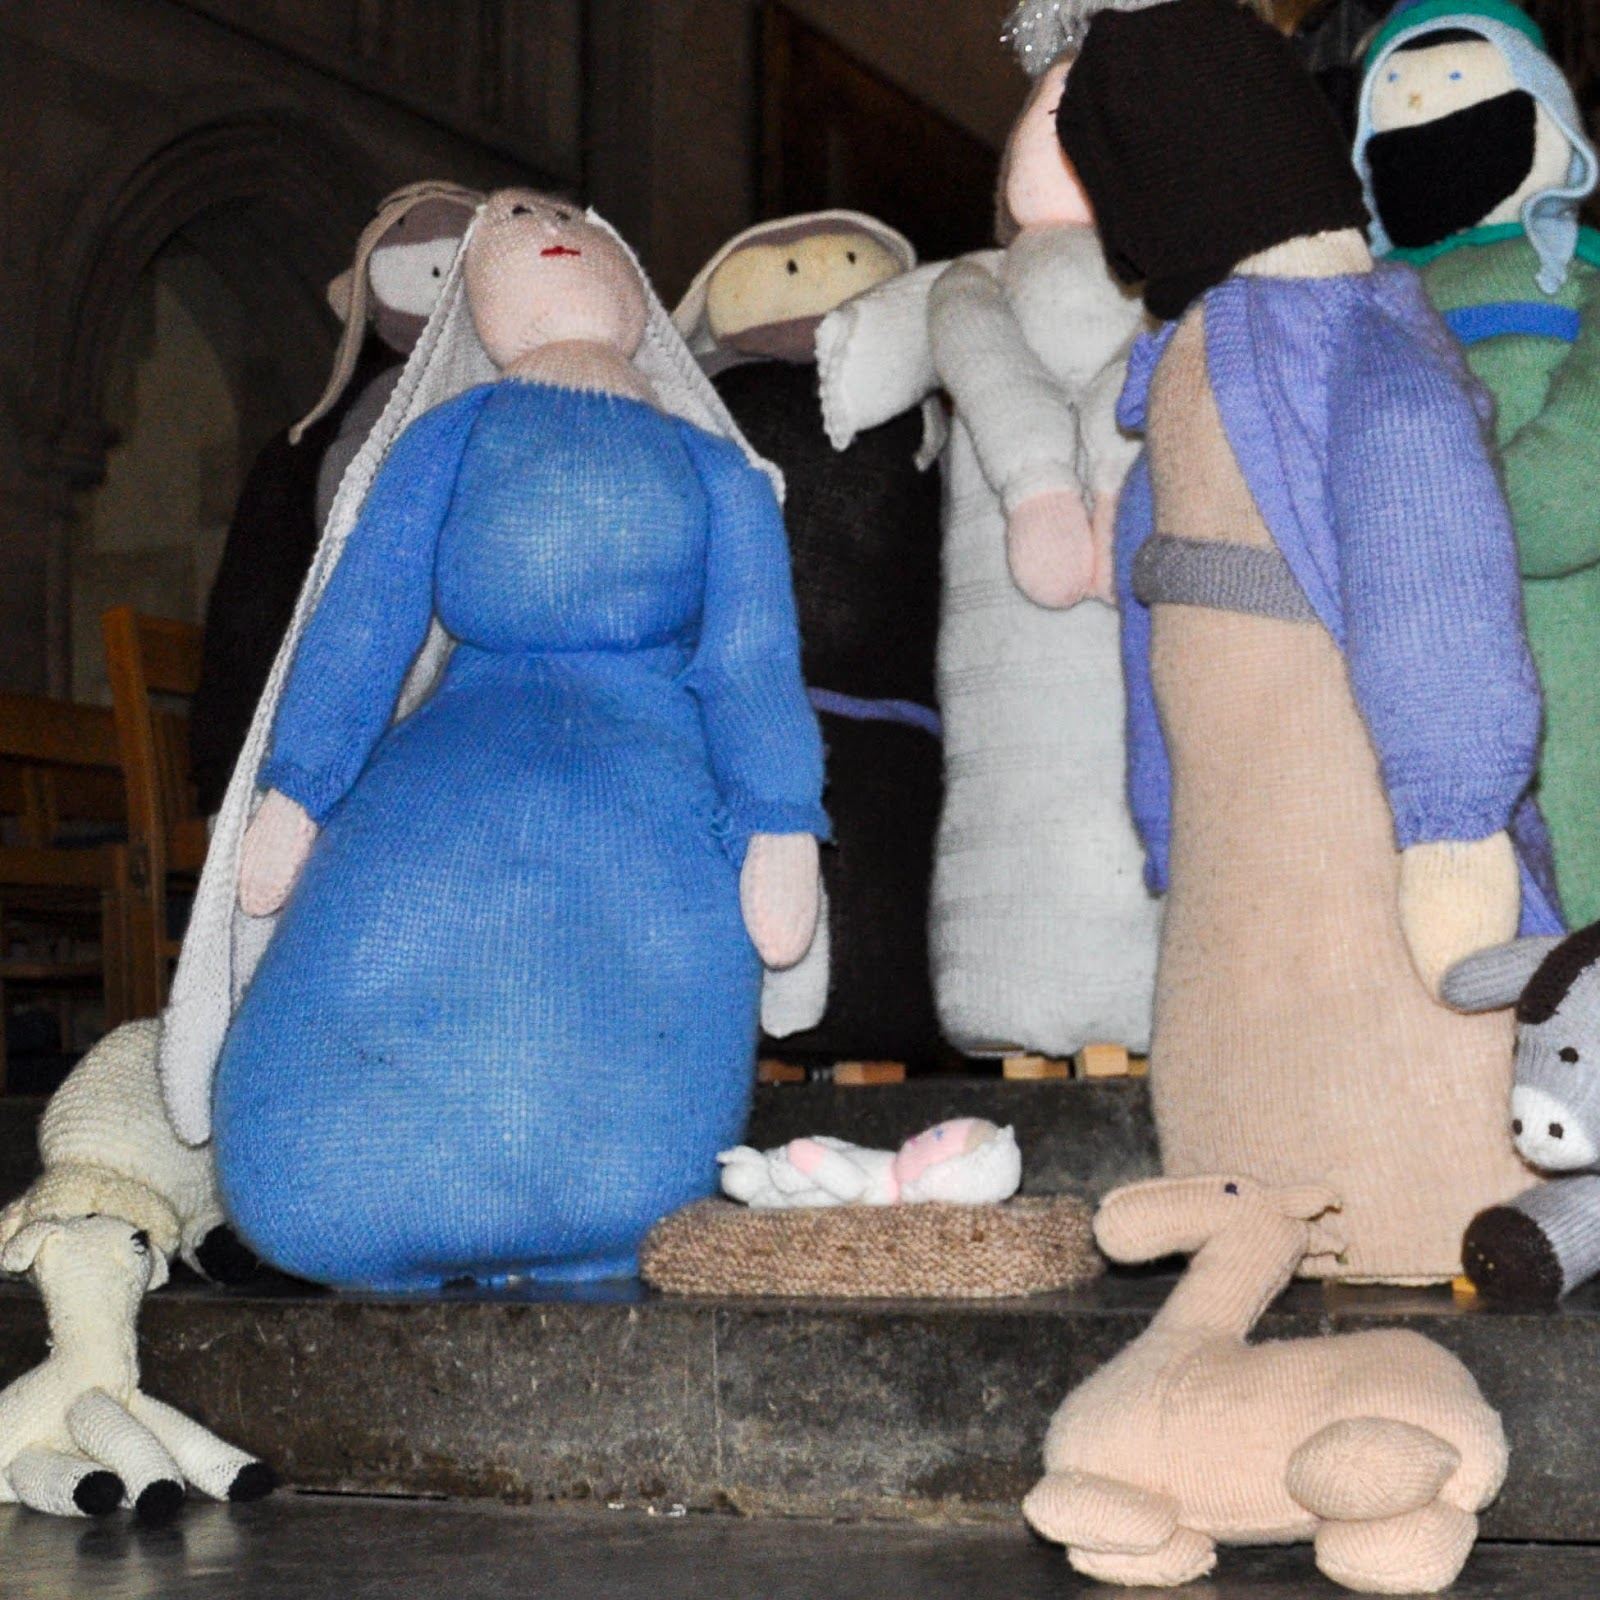 The Knitivity, St. Albans Cathedral, St. Albans, England